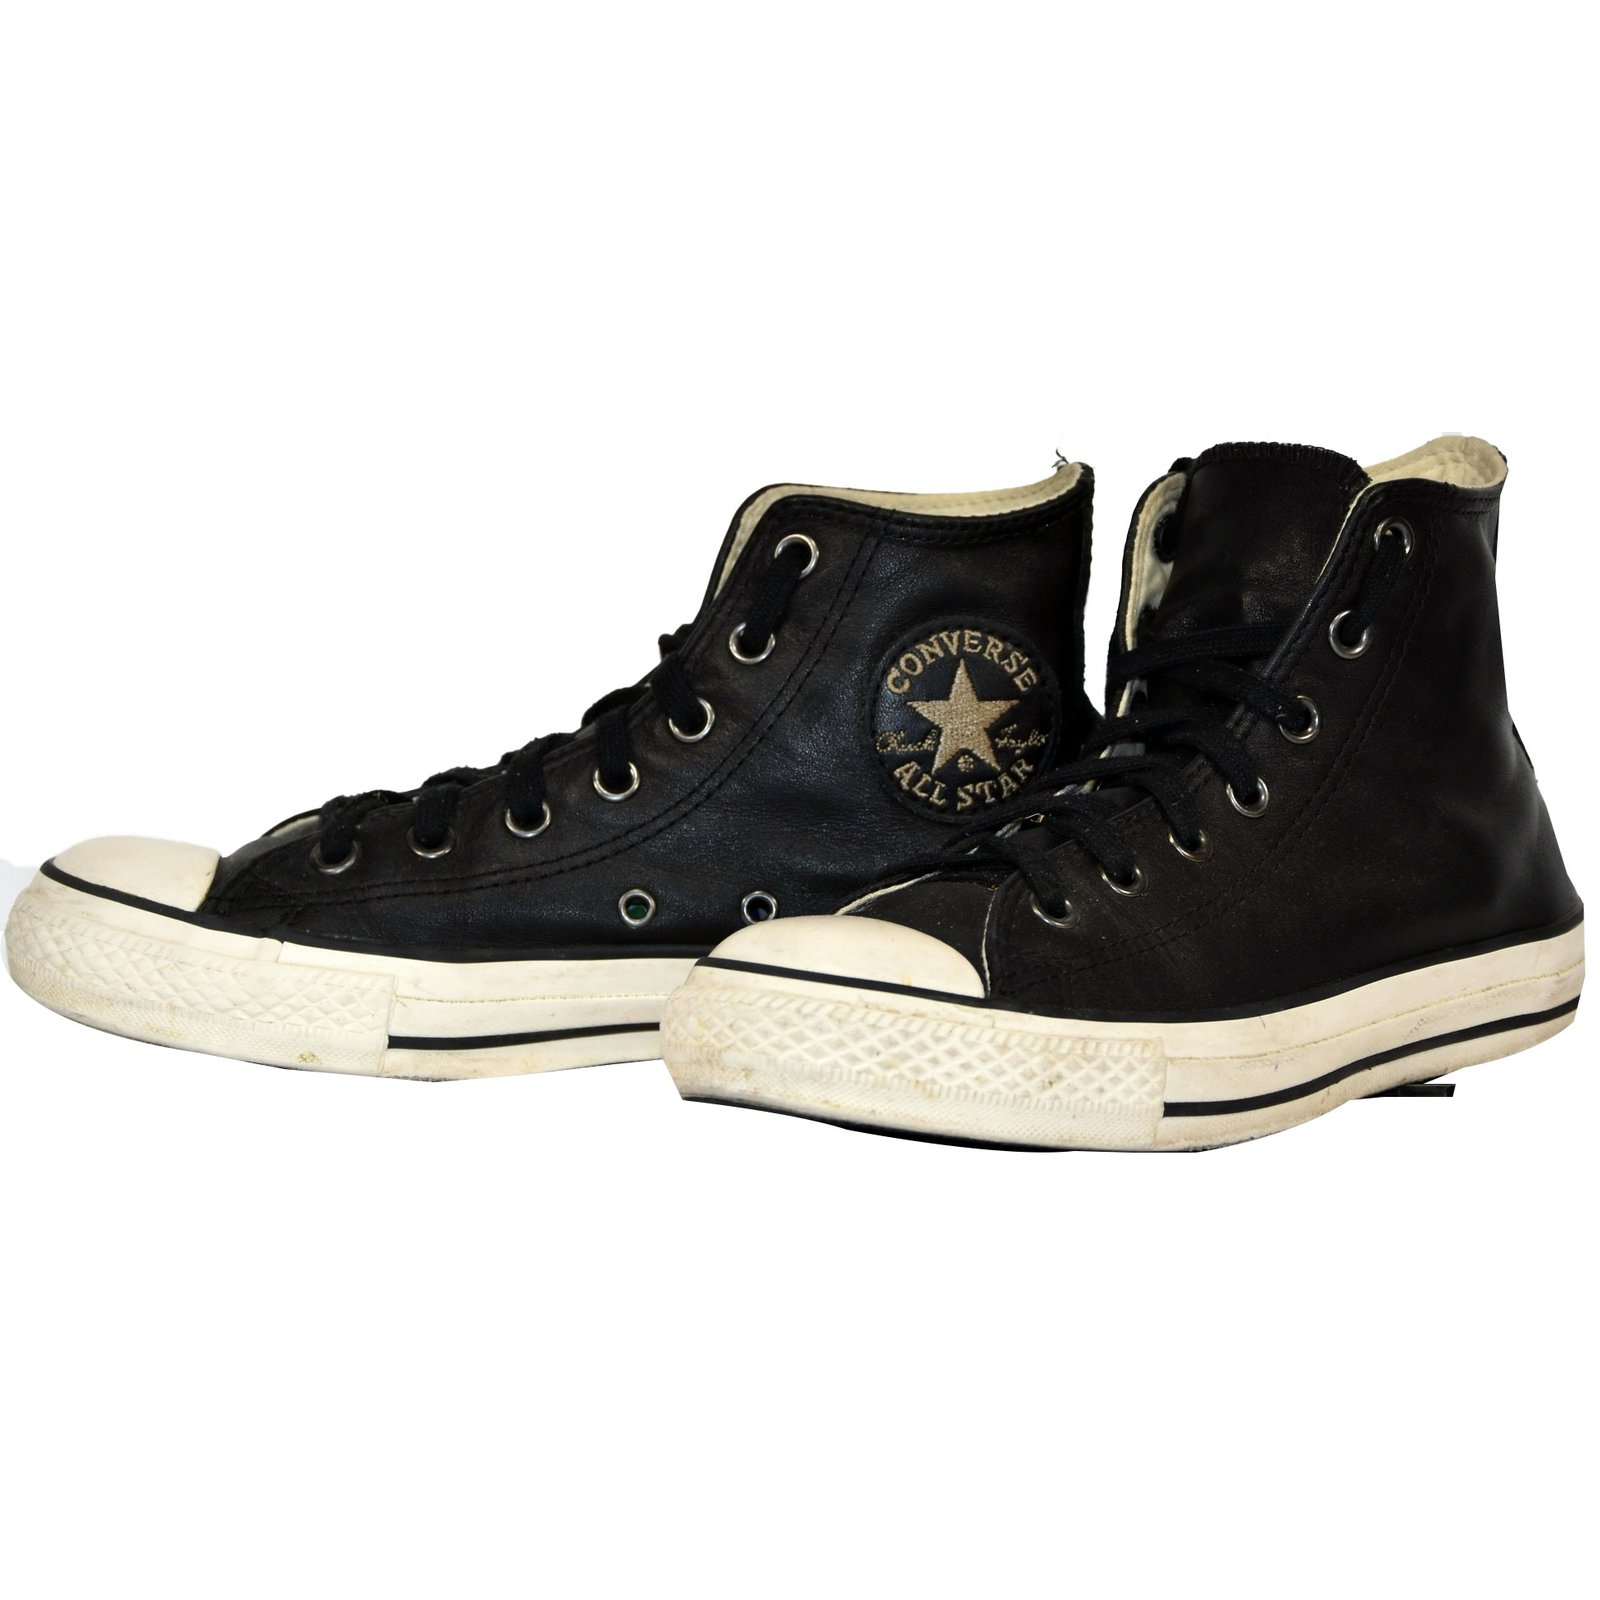 6bee490dcea Converse CONVERSE ALL STAR CHUCK TAYLOR HI CUIR NOIR T.38 UK 5.5 Sneakers  Leather